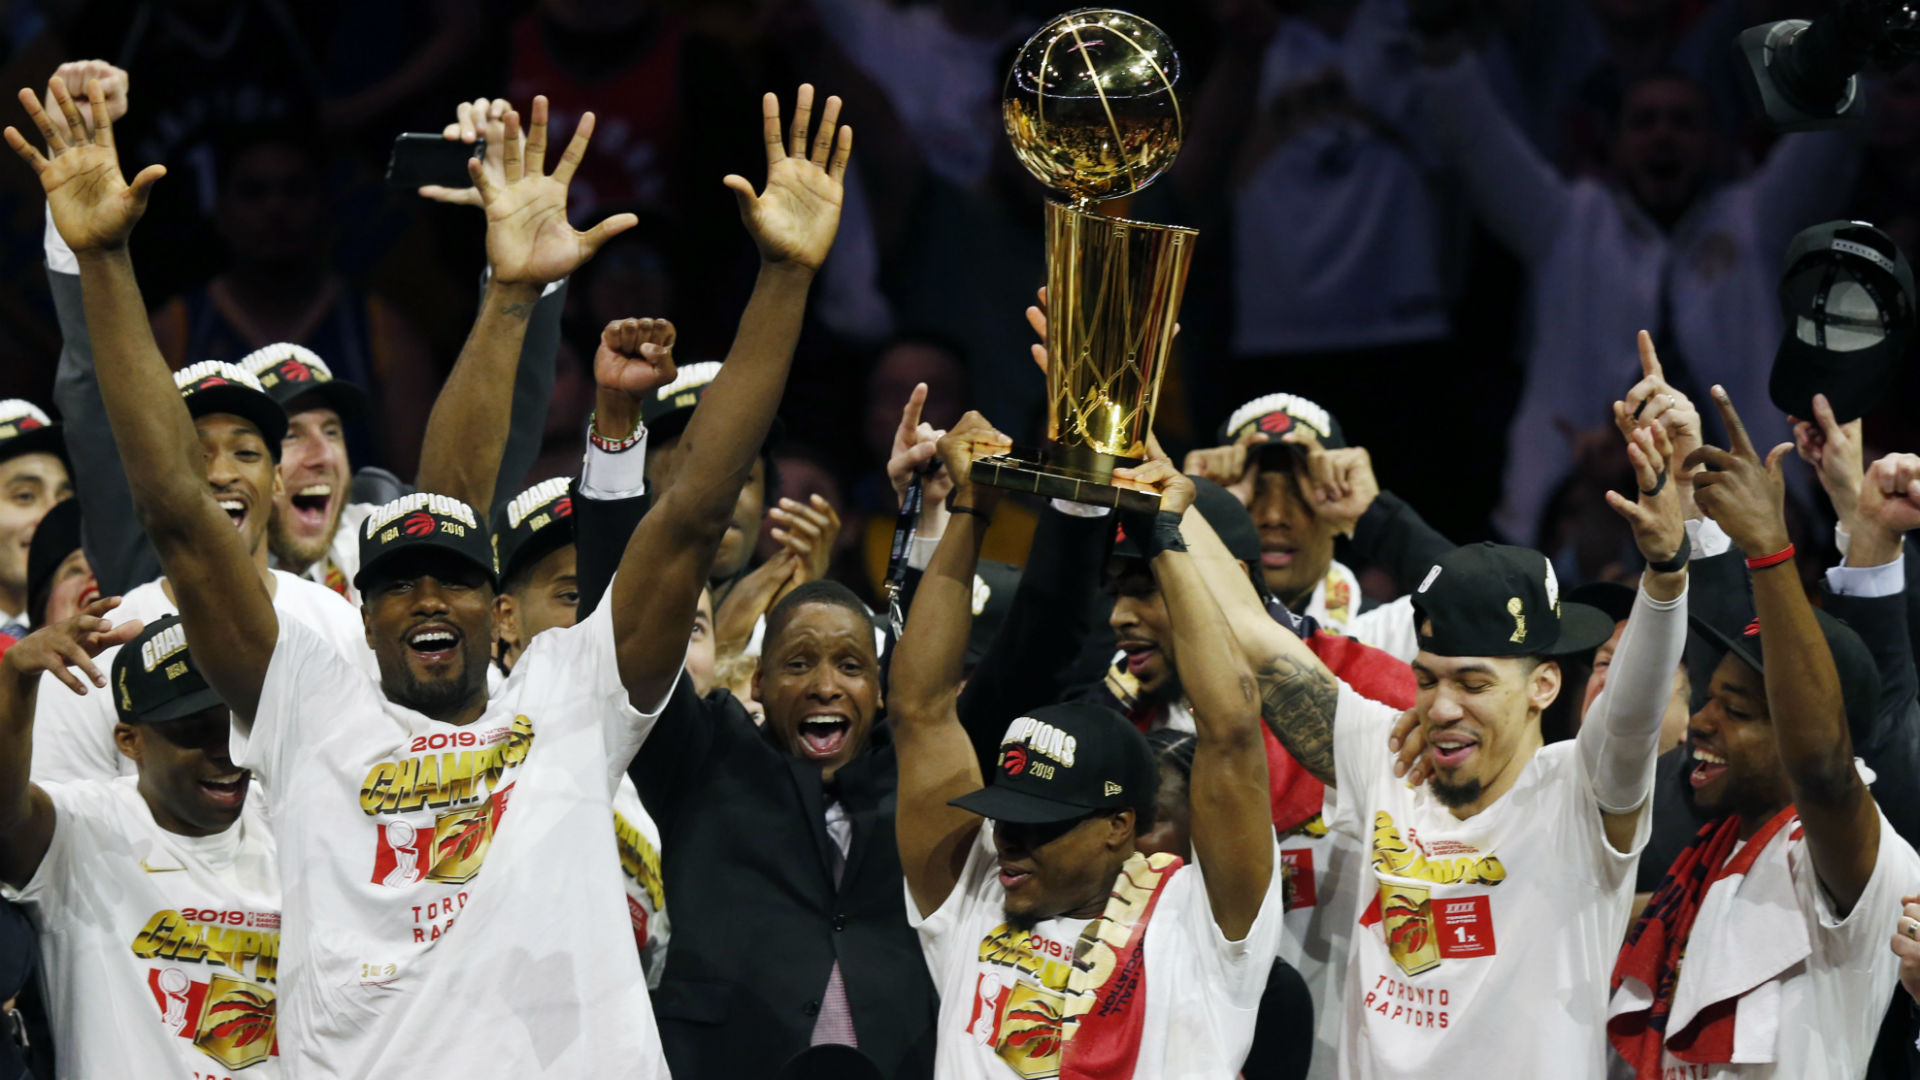 Hi Kawhi, Gasol arrives and the Bucks stopped: Key moments in the Toronto Raptors' title run